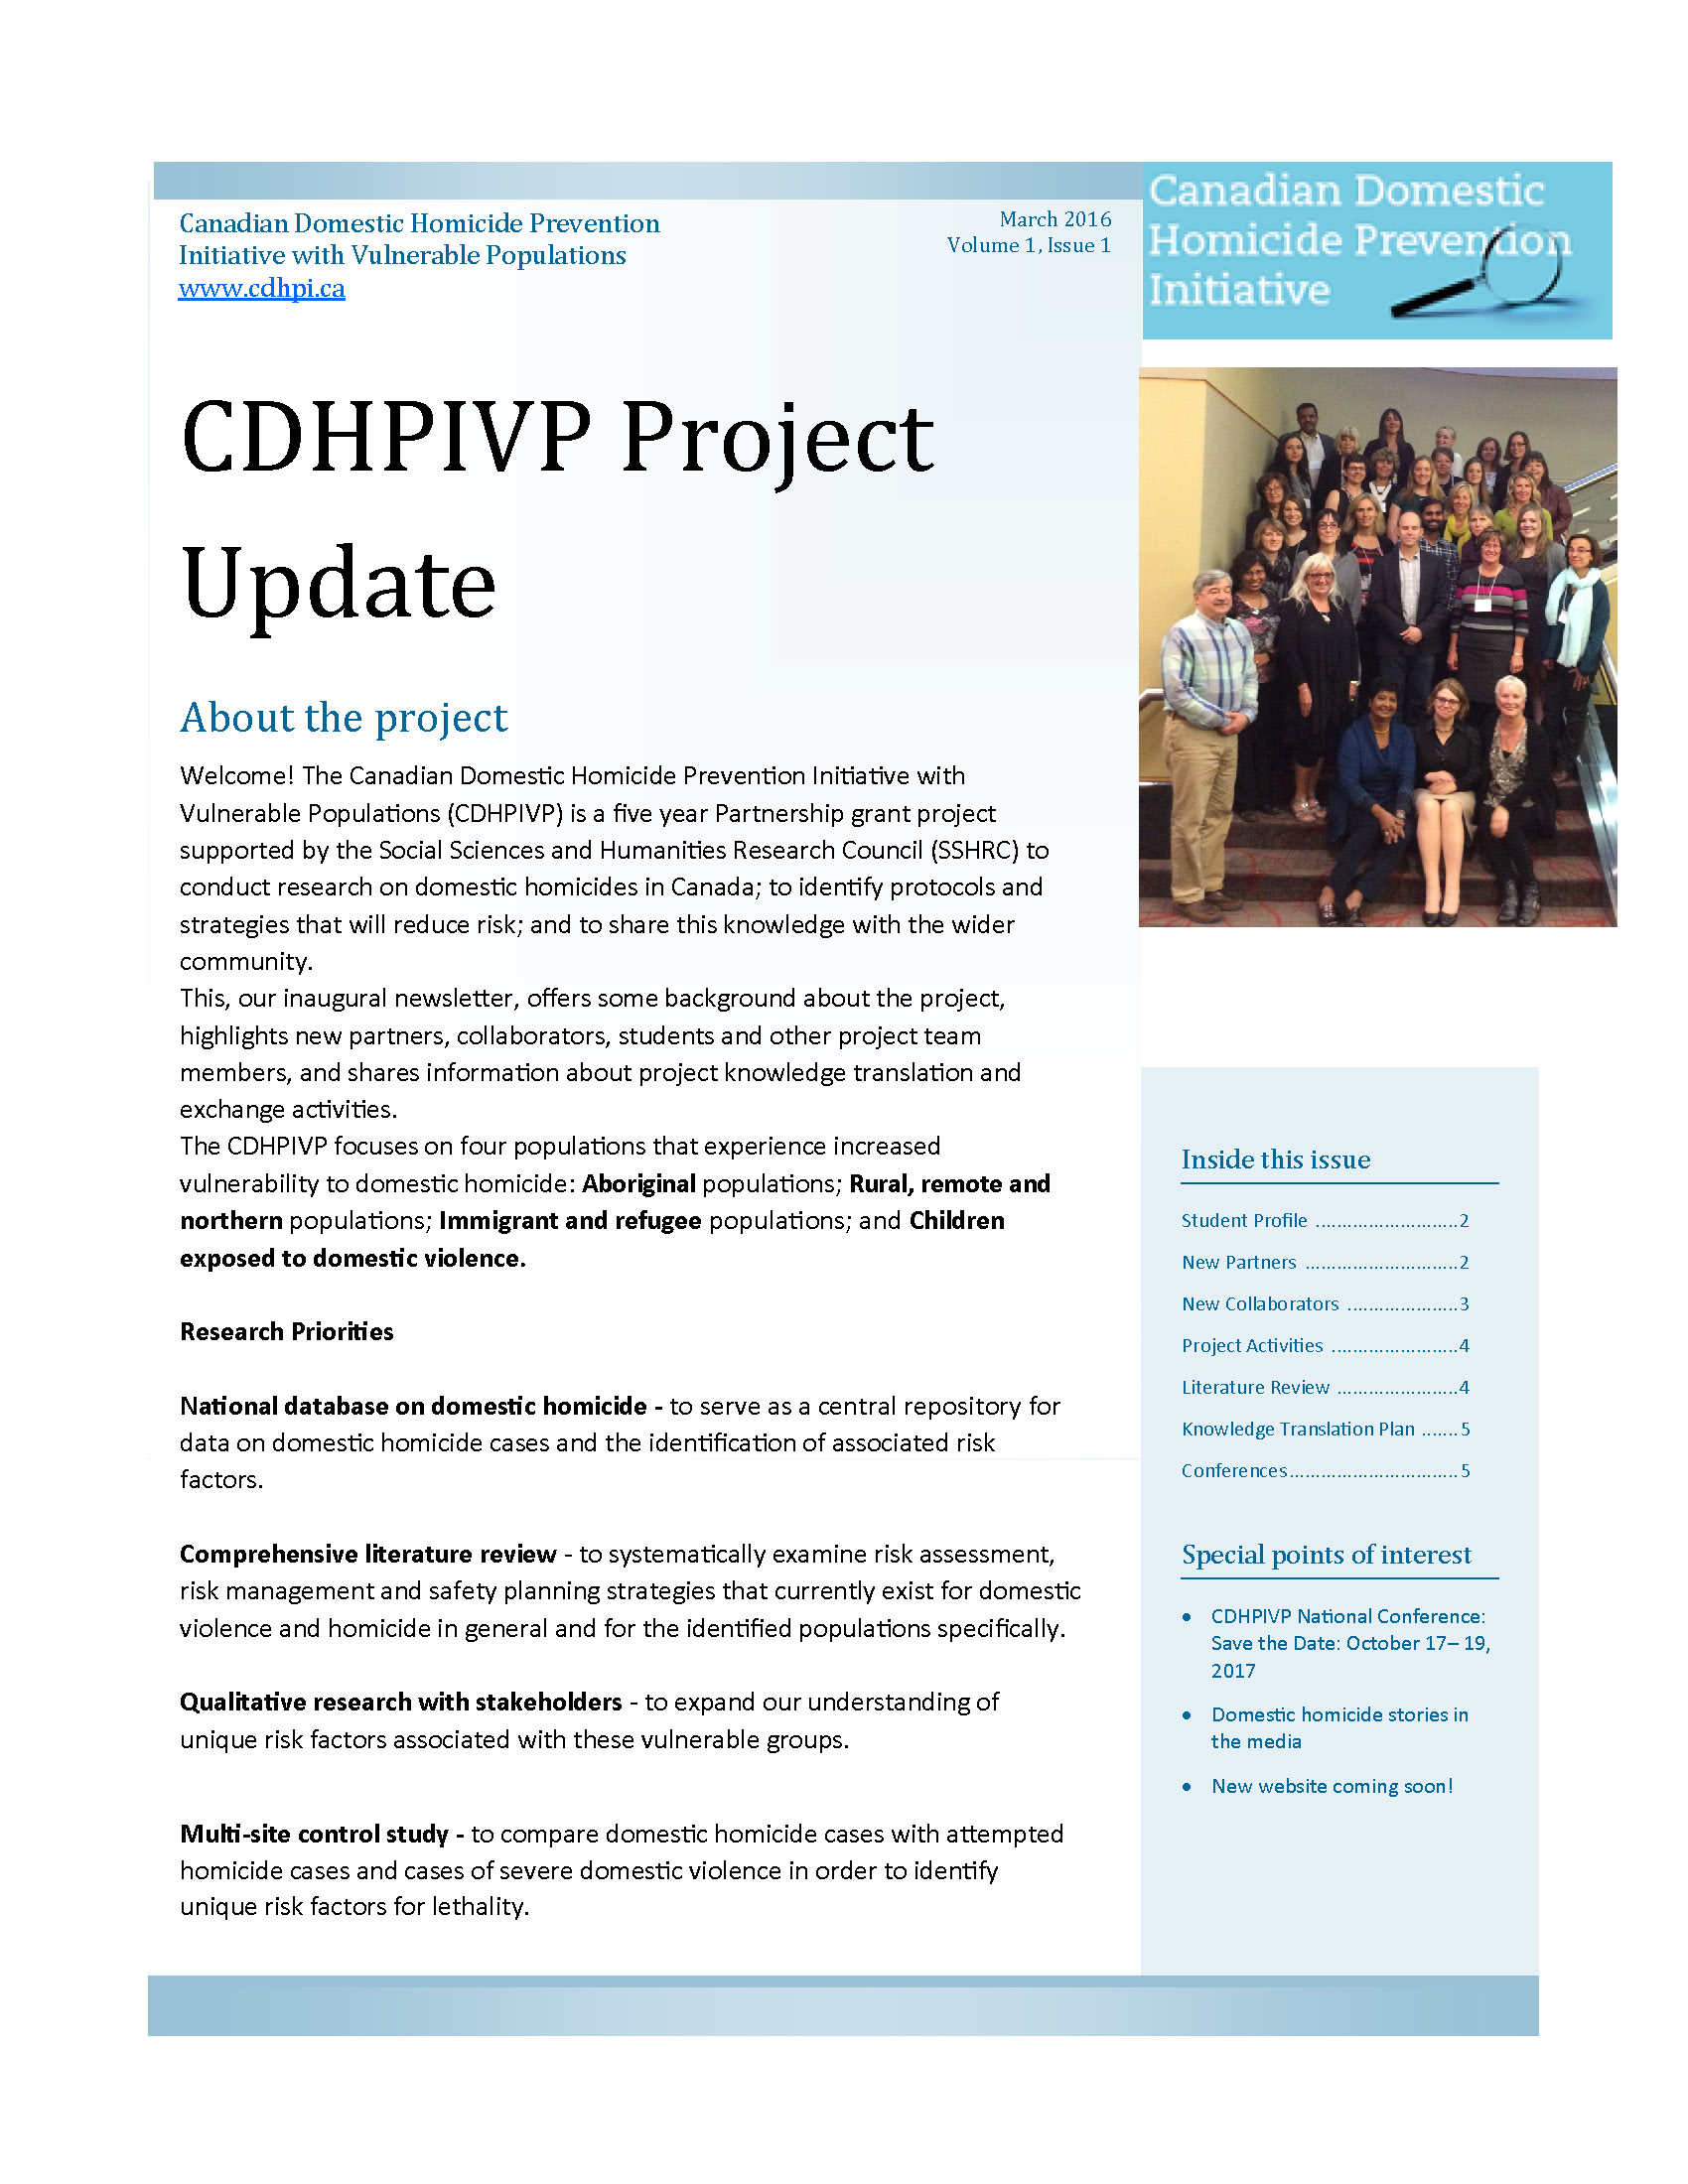 CDHPIVP Project Update: Volume 1, Newsletter 1 cover page